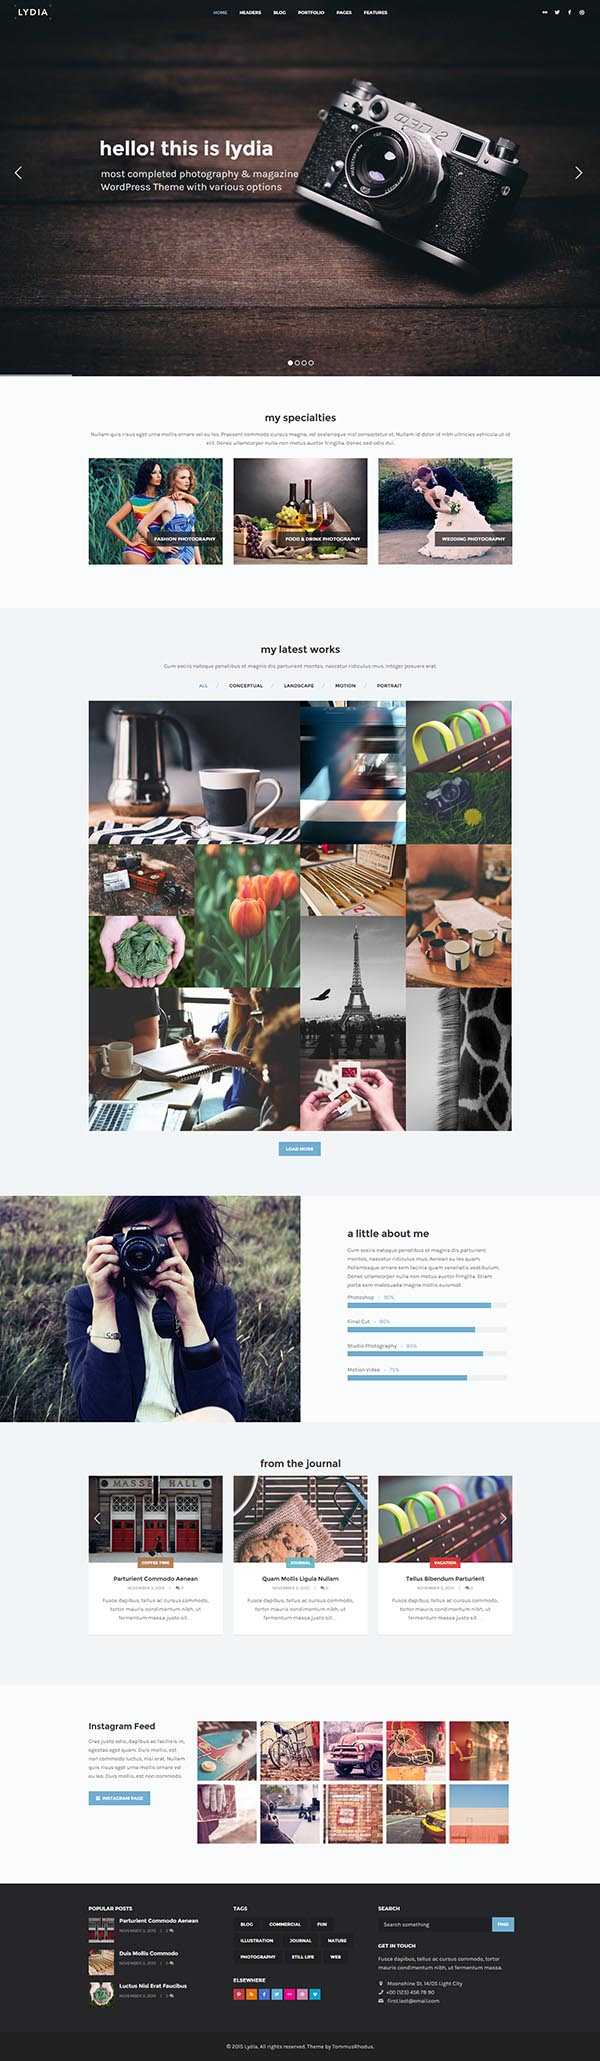 Lydia – Photography & Magazine WordPress Theme